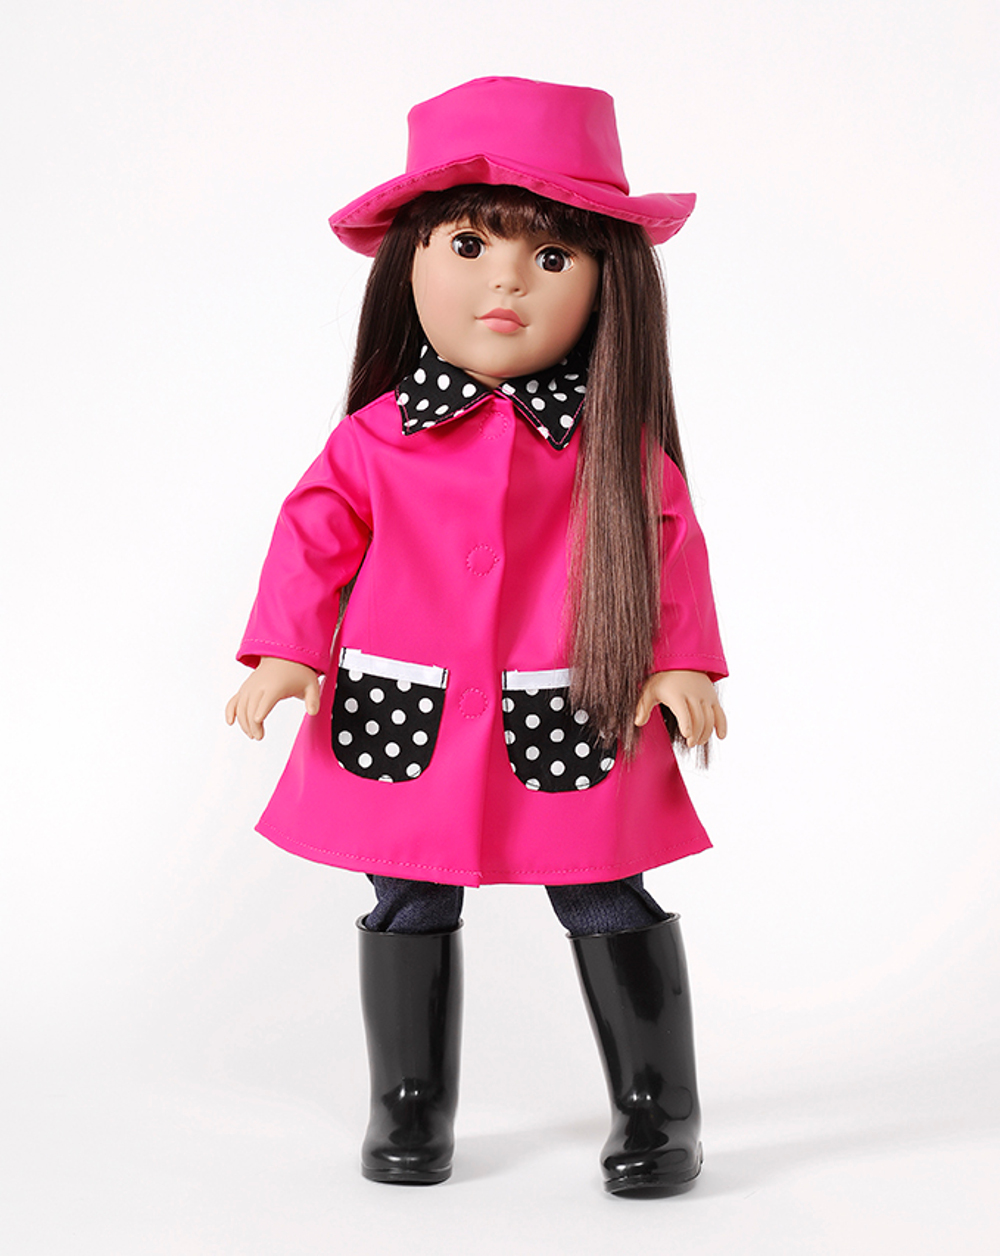 Dollie Amp Me 18 Raincoat Doll Toys Amp Games Dolls